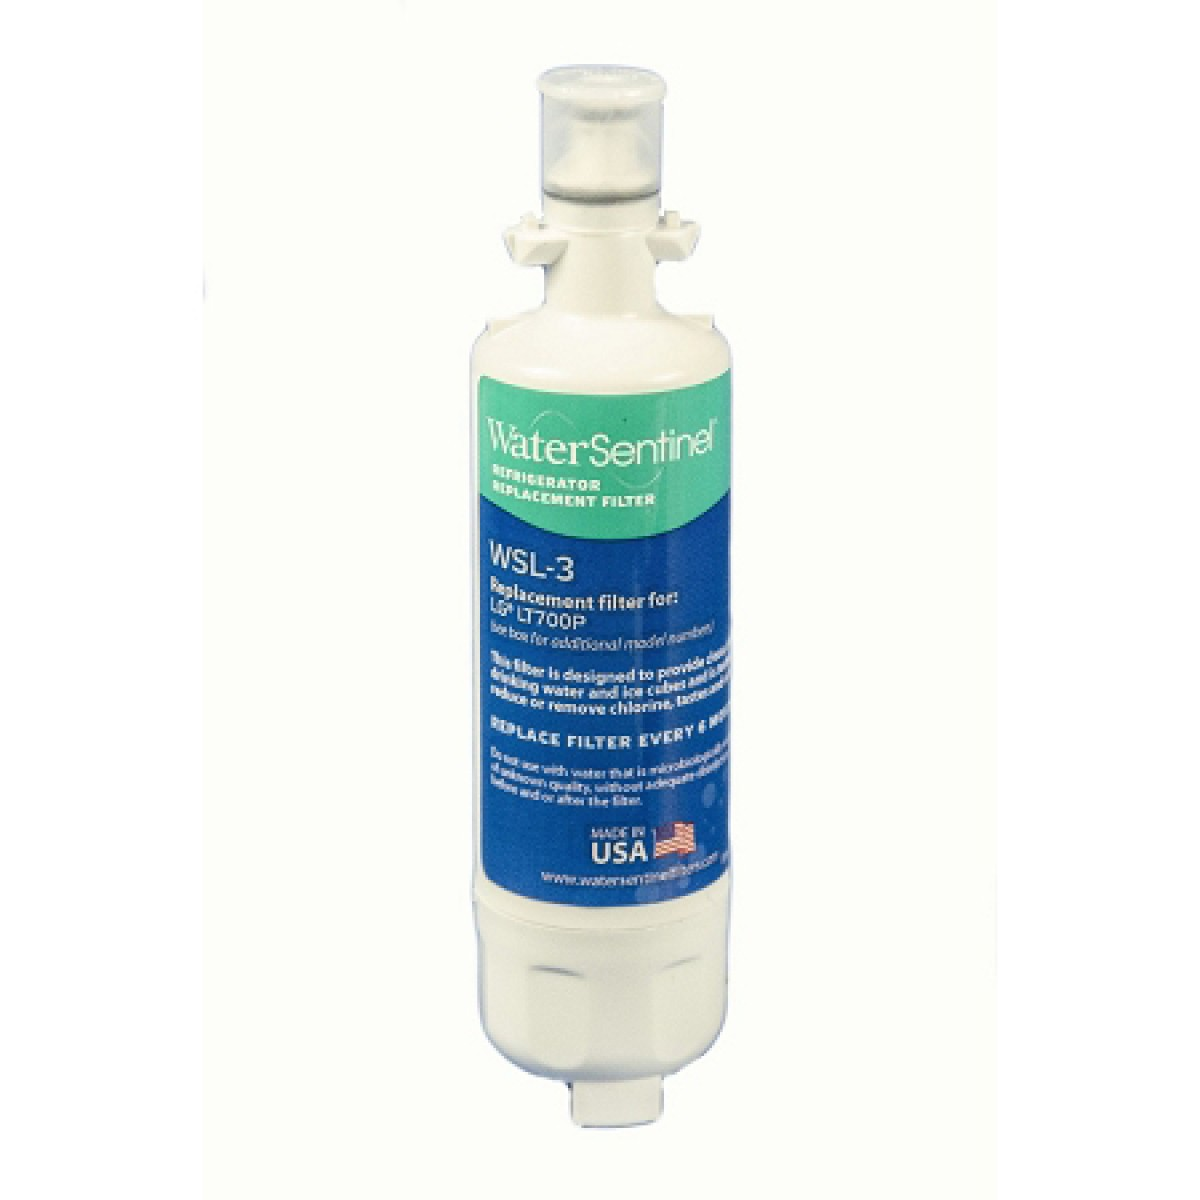 lg refrigerator replacement filter. lg lt700p refrigerator water filter: comparable replacement by sentinel lg filter 0